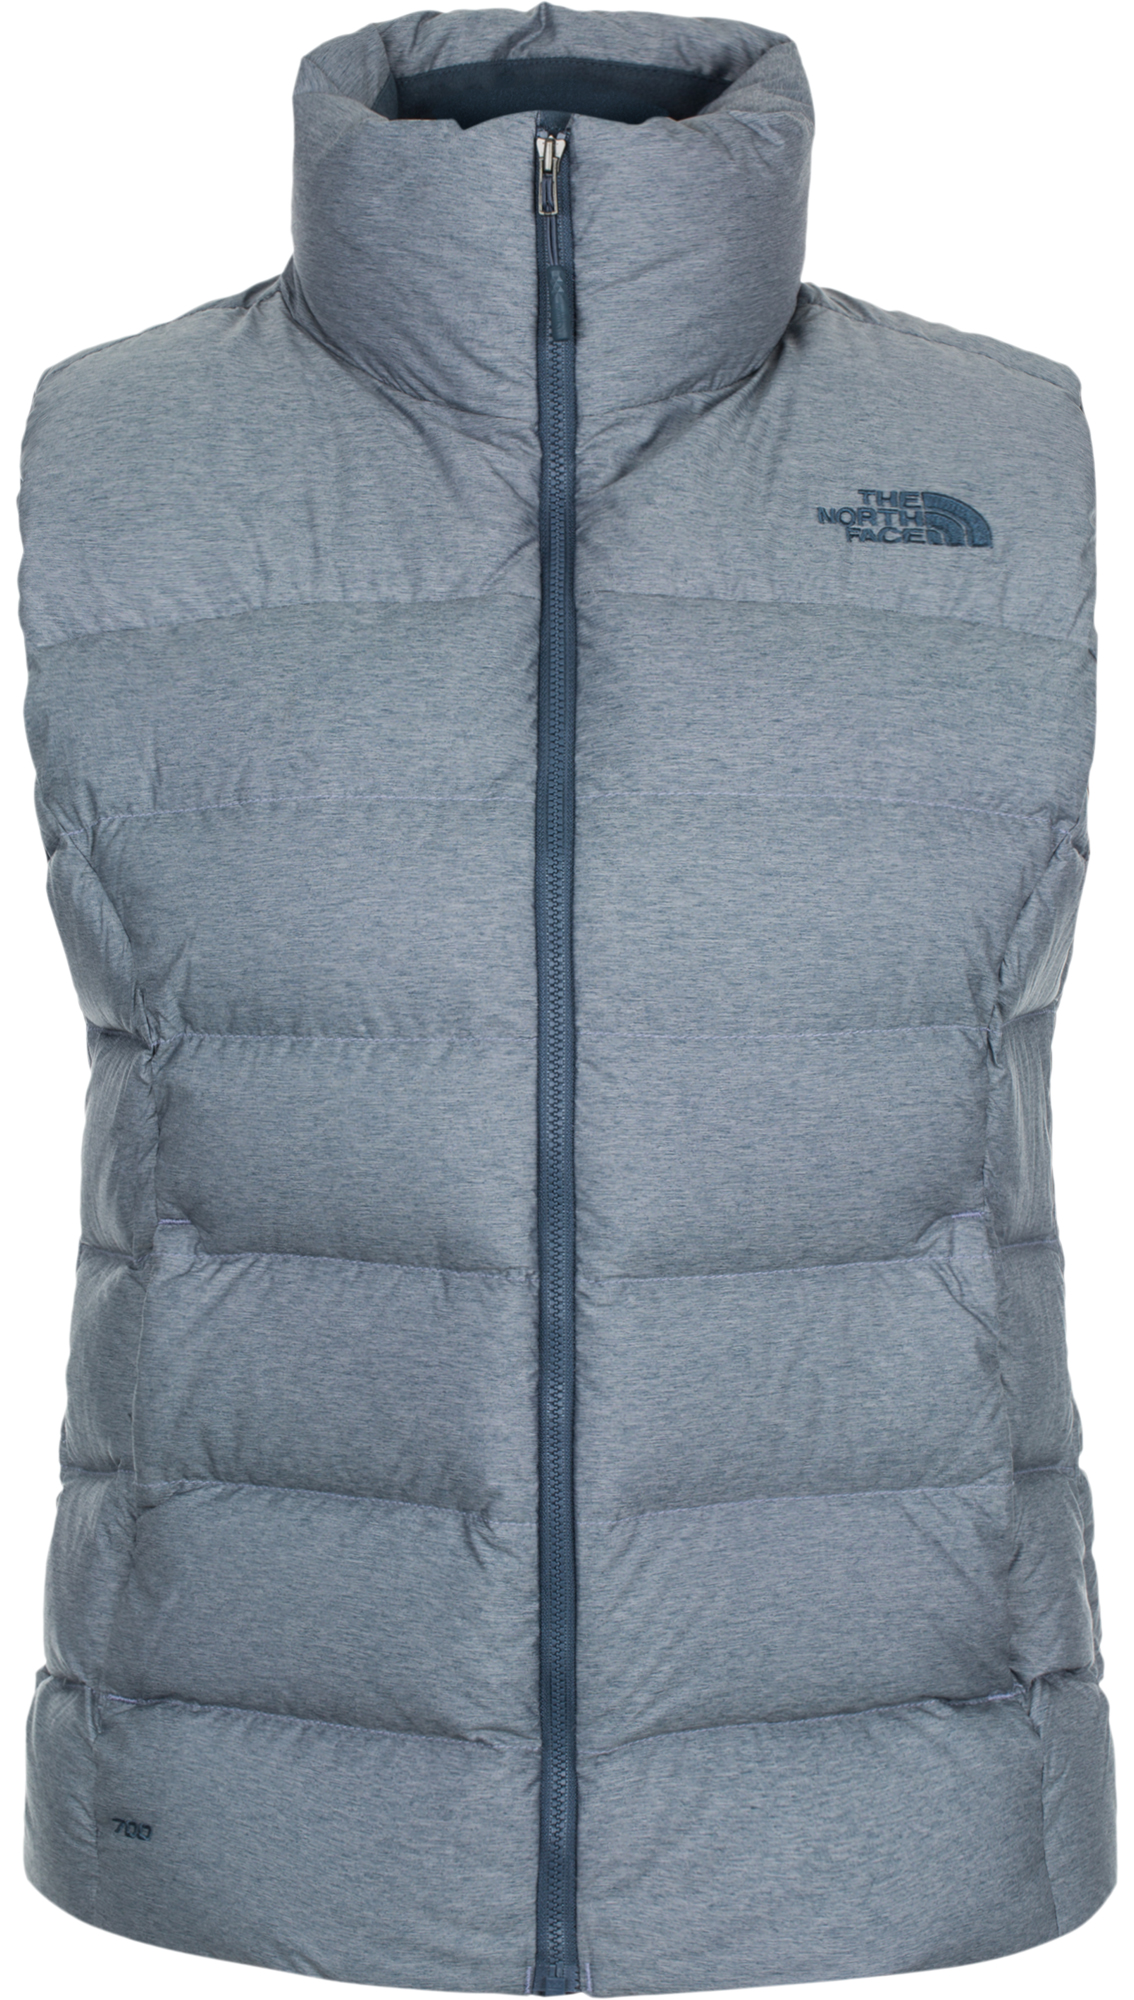 The North Face Жилет пуховой женский The North Face Nuptse Vest the north face бермуды